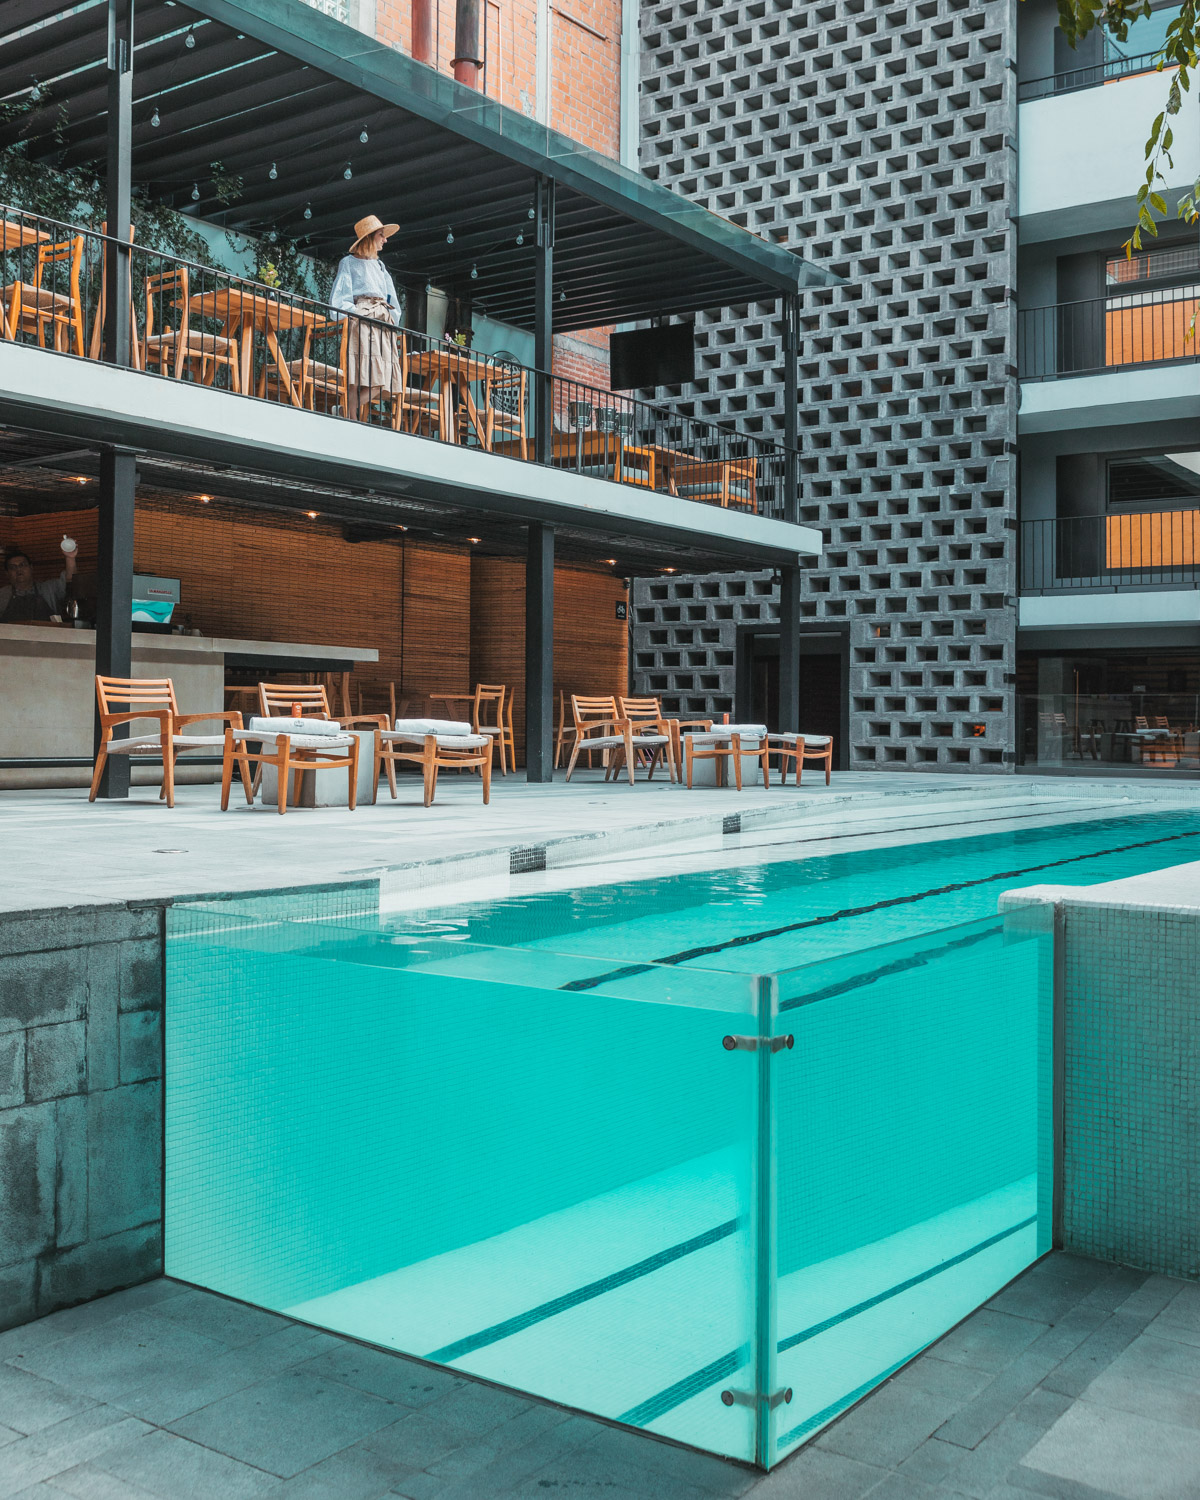 The pool at Hotel Carlota // The Most Instagrammable Spots in Mexico City #readysetjetset